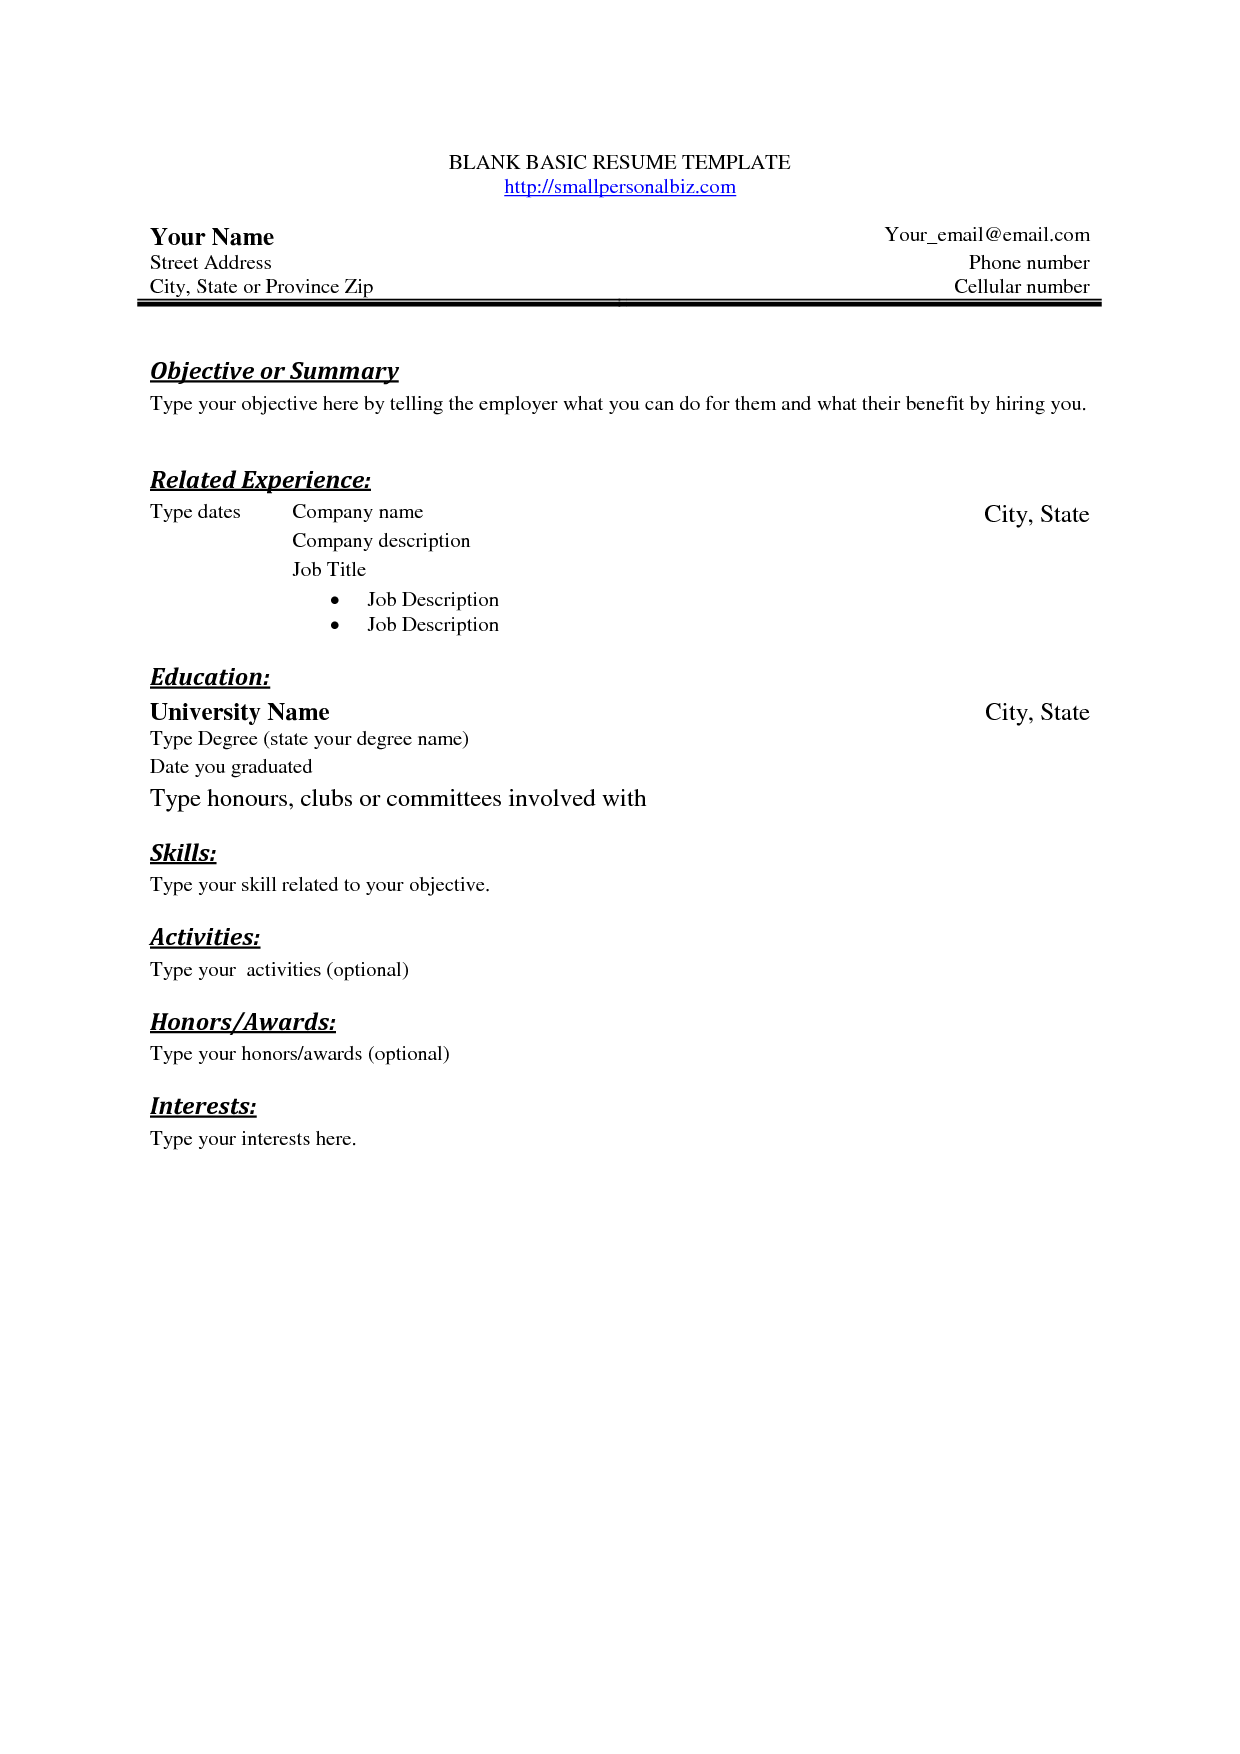 Free Basic Blank Resume Template – Basic Resume Template